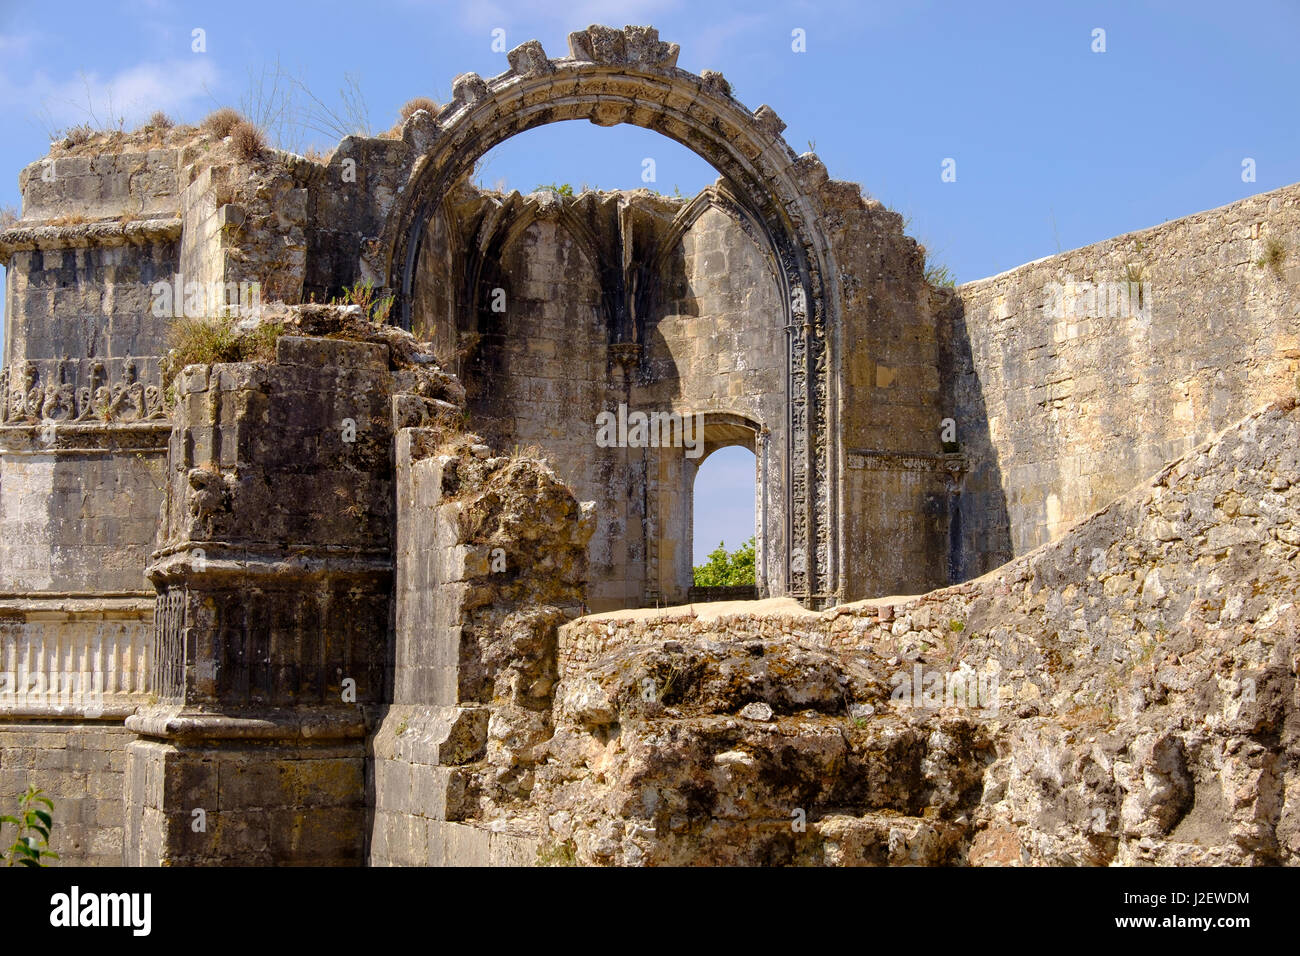 Portugal, Tomar. Tomar Castle, Knights of the Templar fortress, castle and convent. Convent of Knights of Christ. - Stock Image